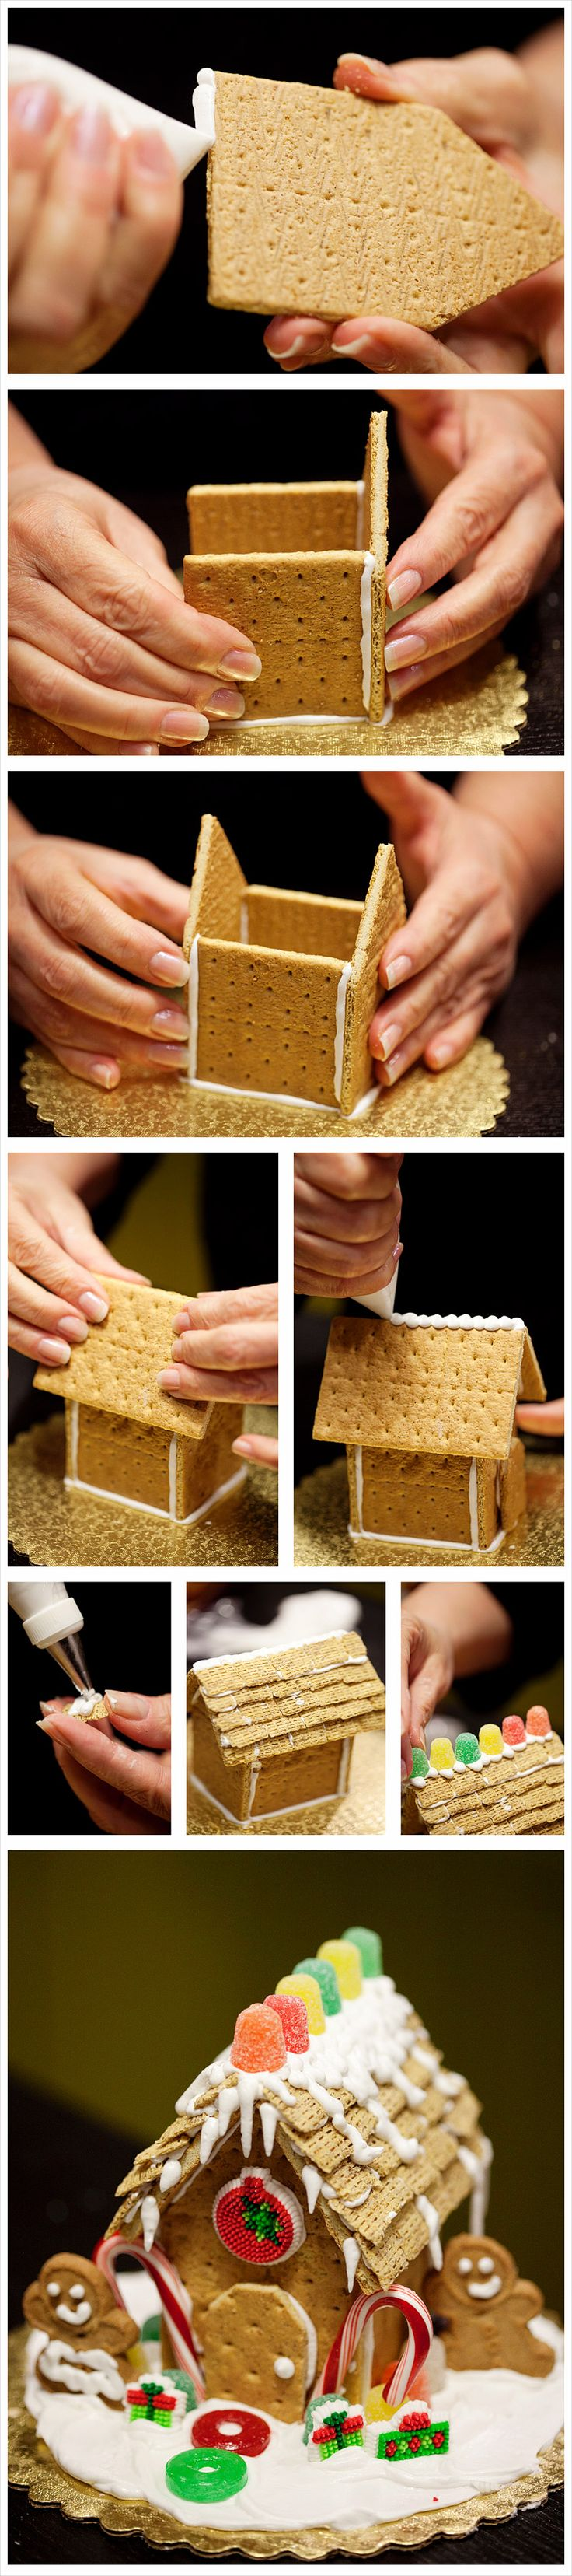 Mini Gingerbread Houses...adorable.